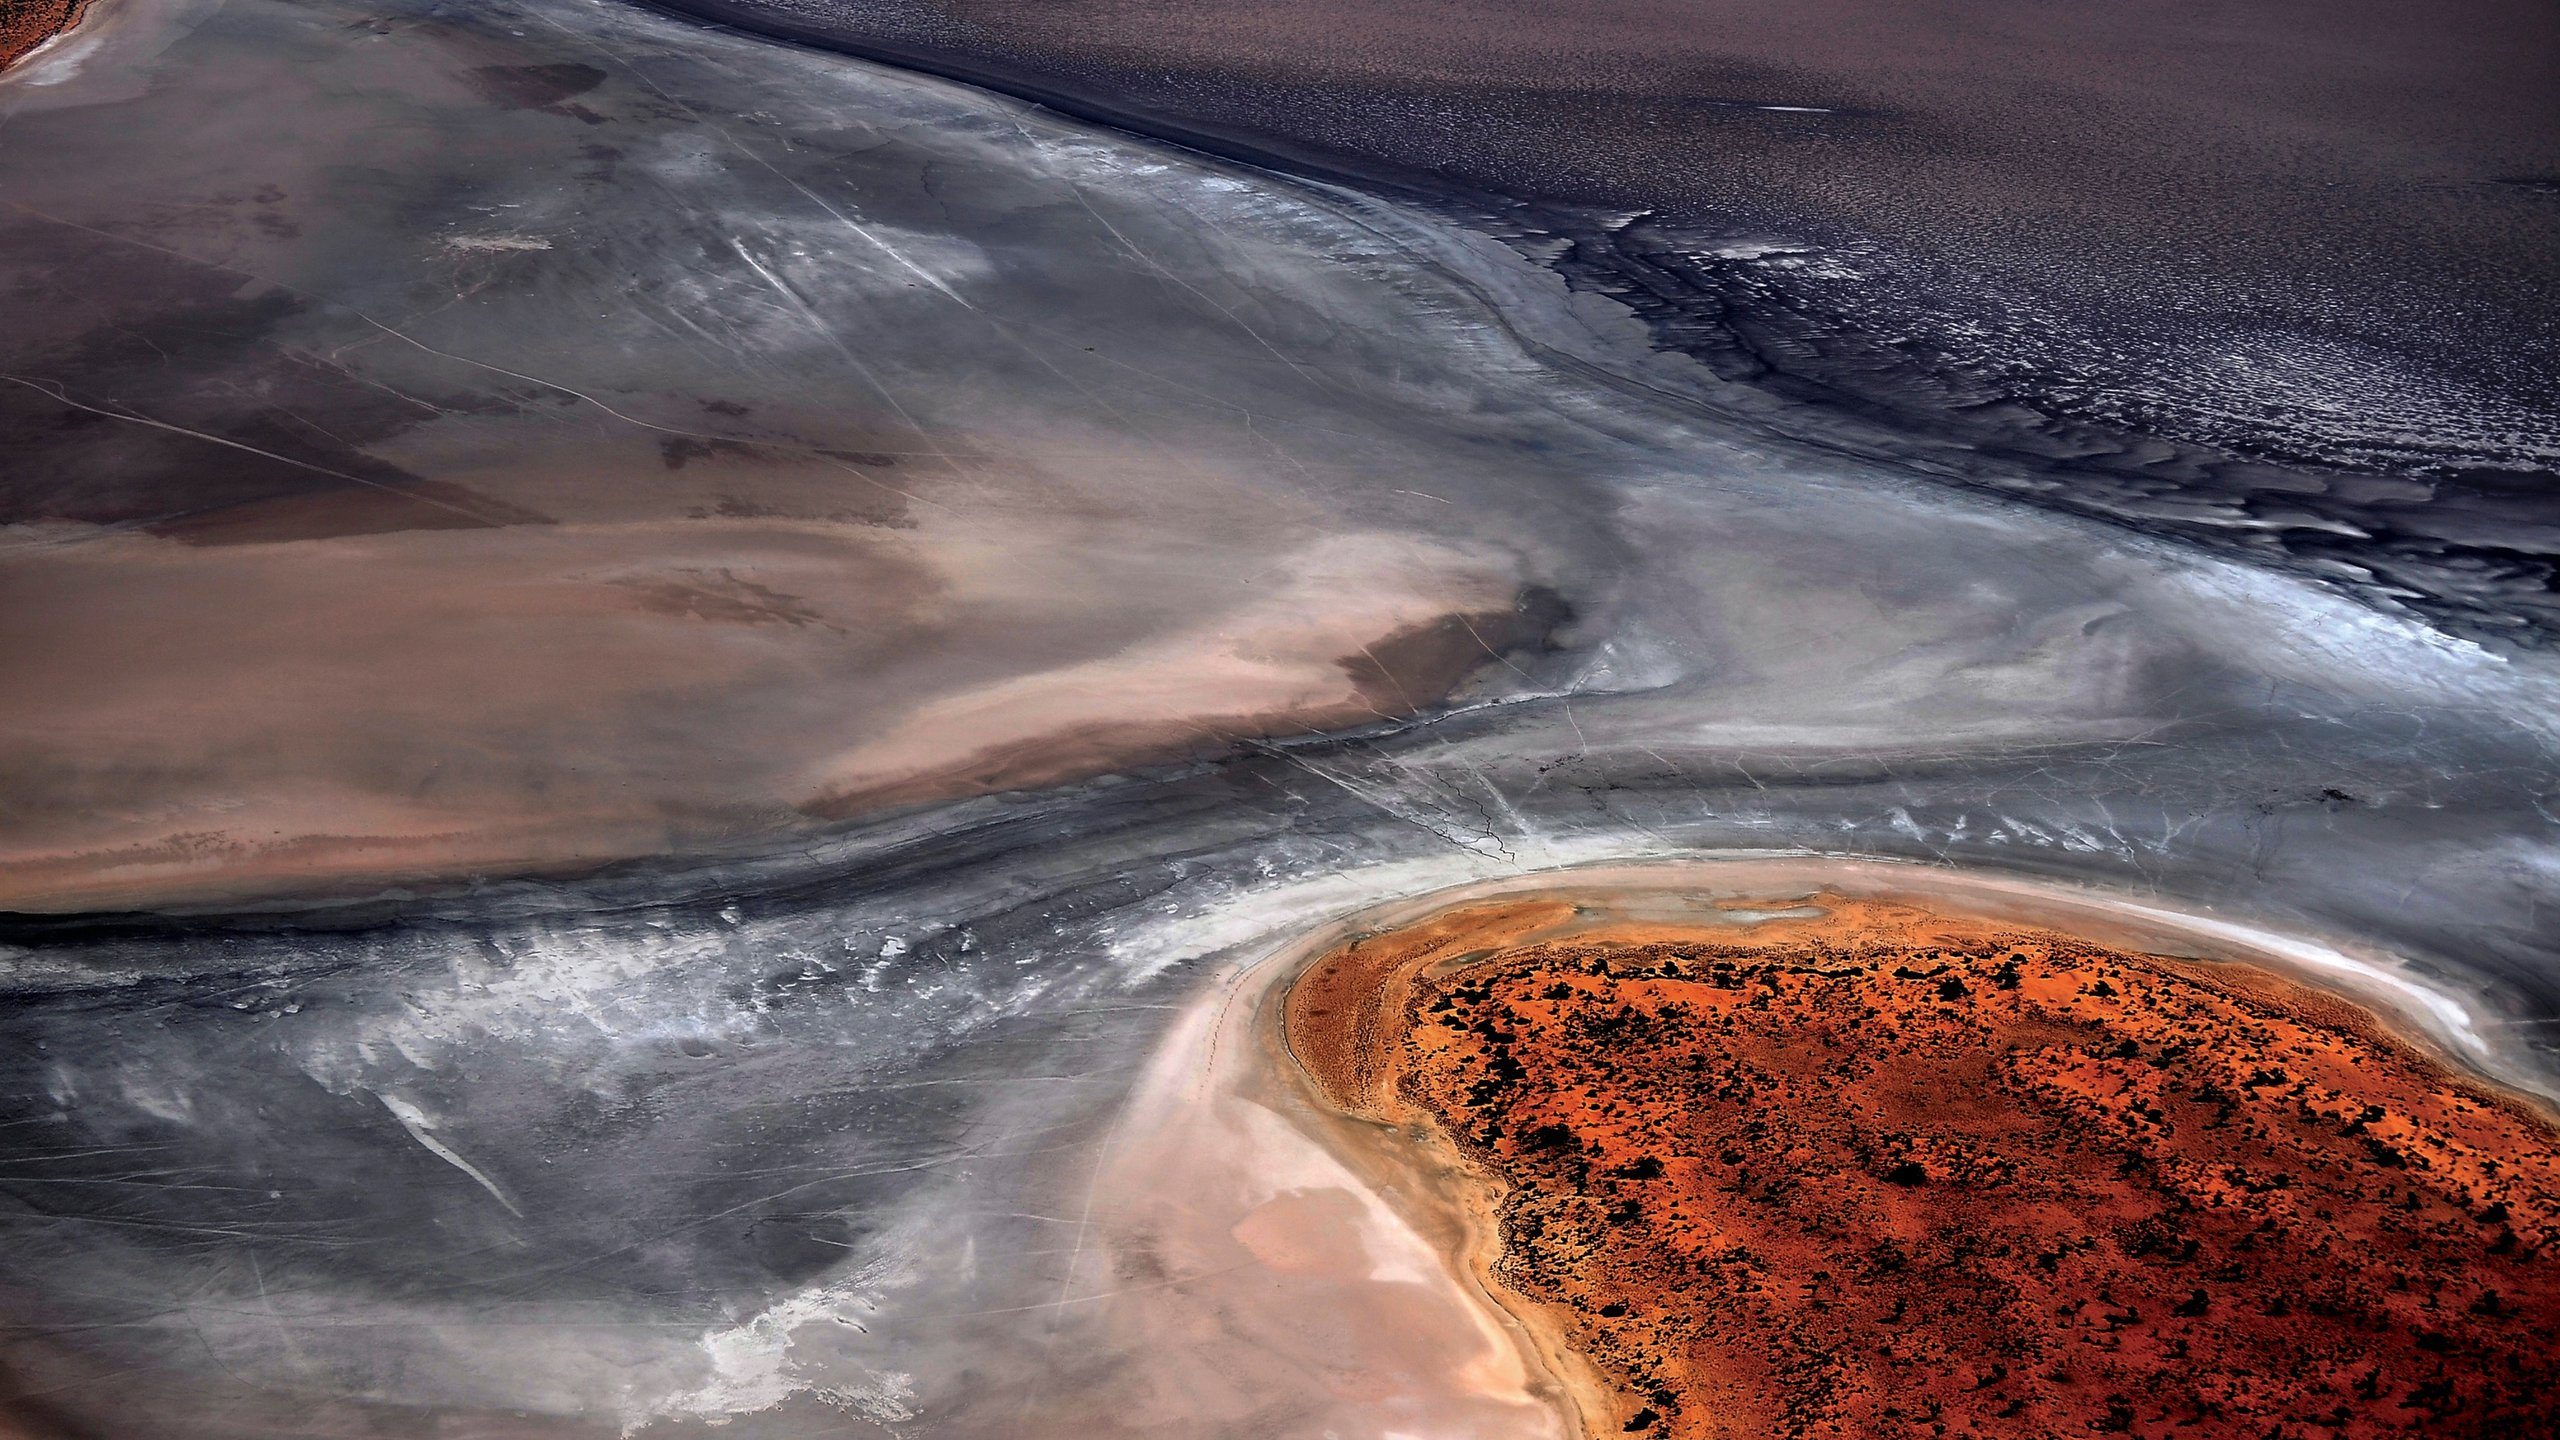 Discover Aboriginal rock art and the living culture of the Anangu people, take a joy flight over Uluru and hike through the incredible landscapes of the Red Centre.